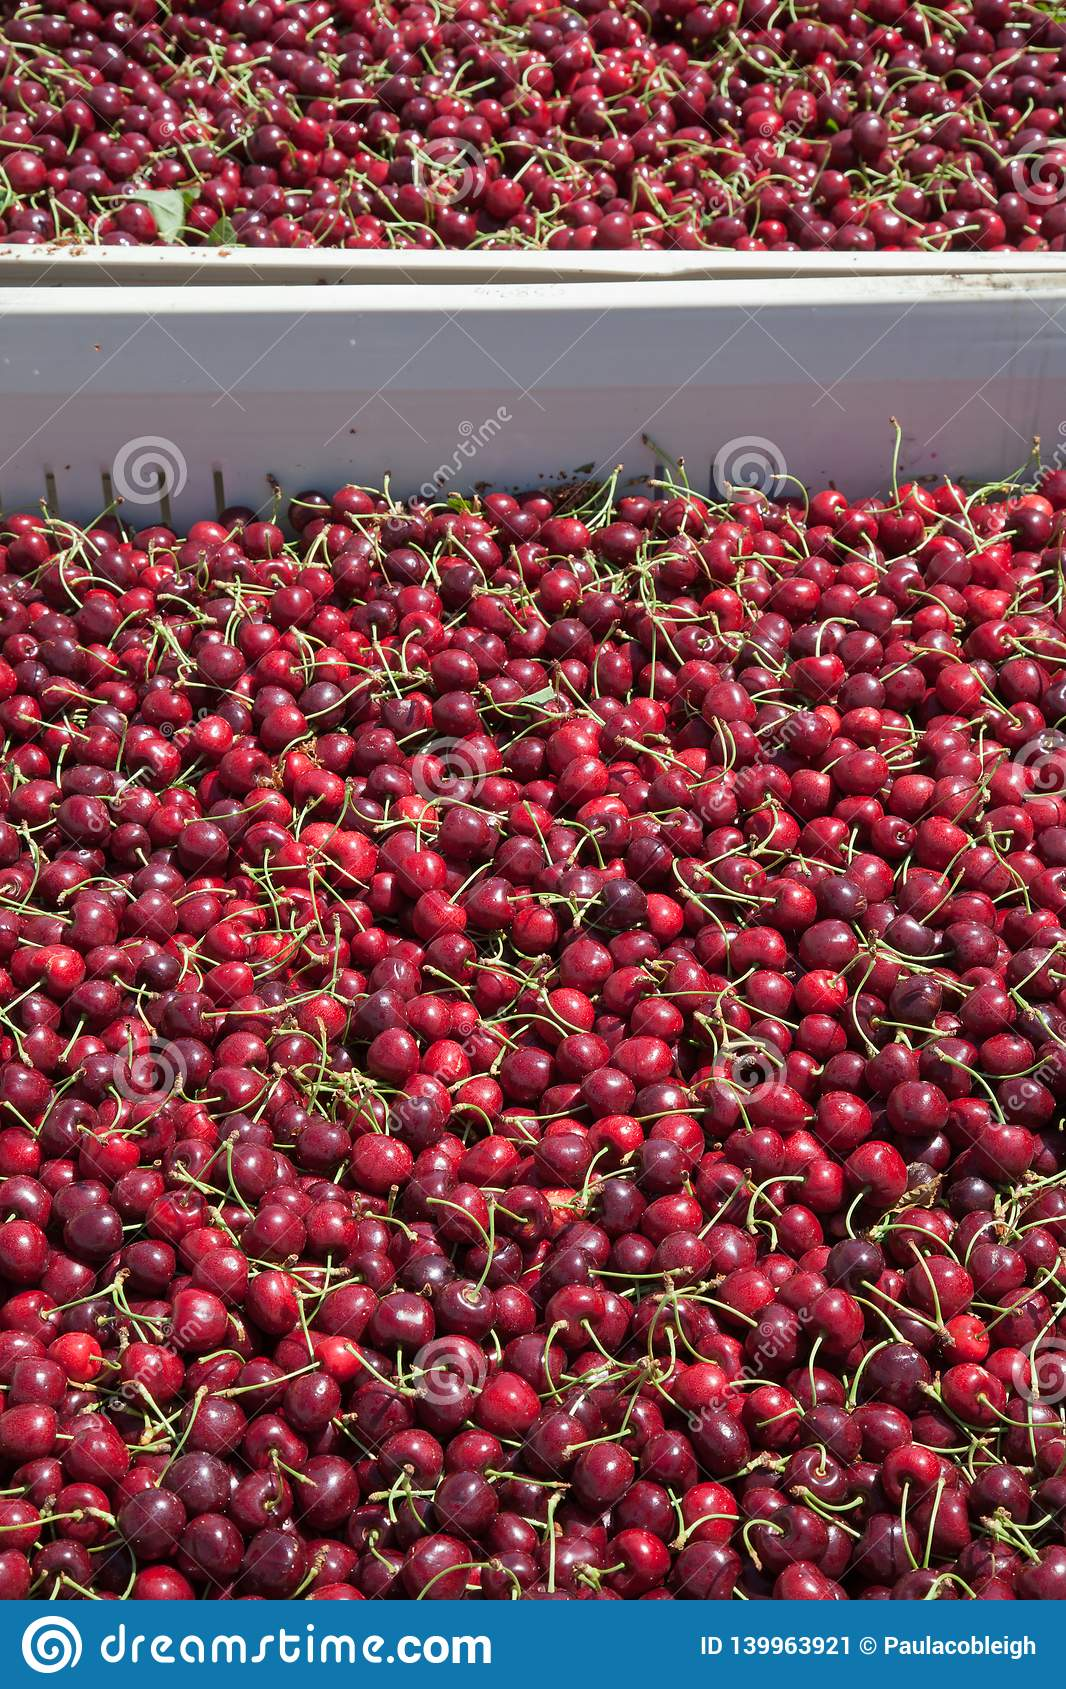 Many red ripe cherries in a bin ready to be packaged for sale